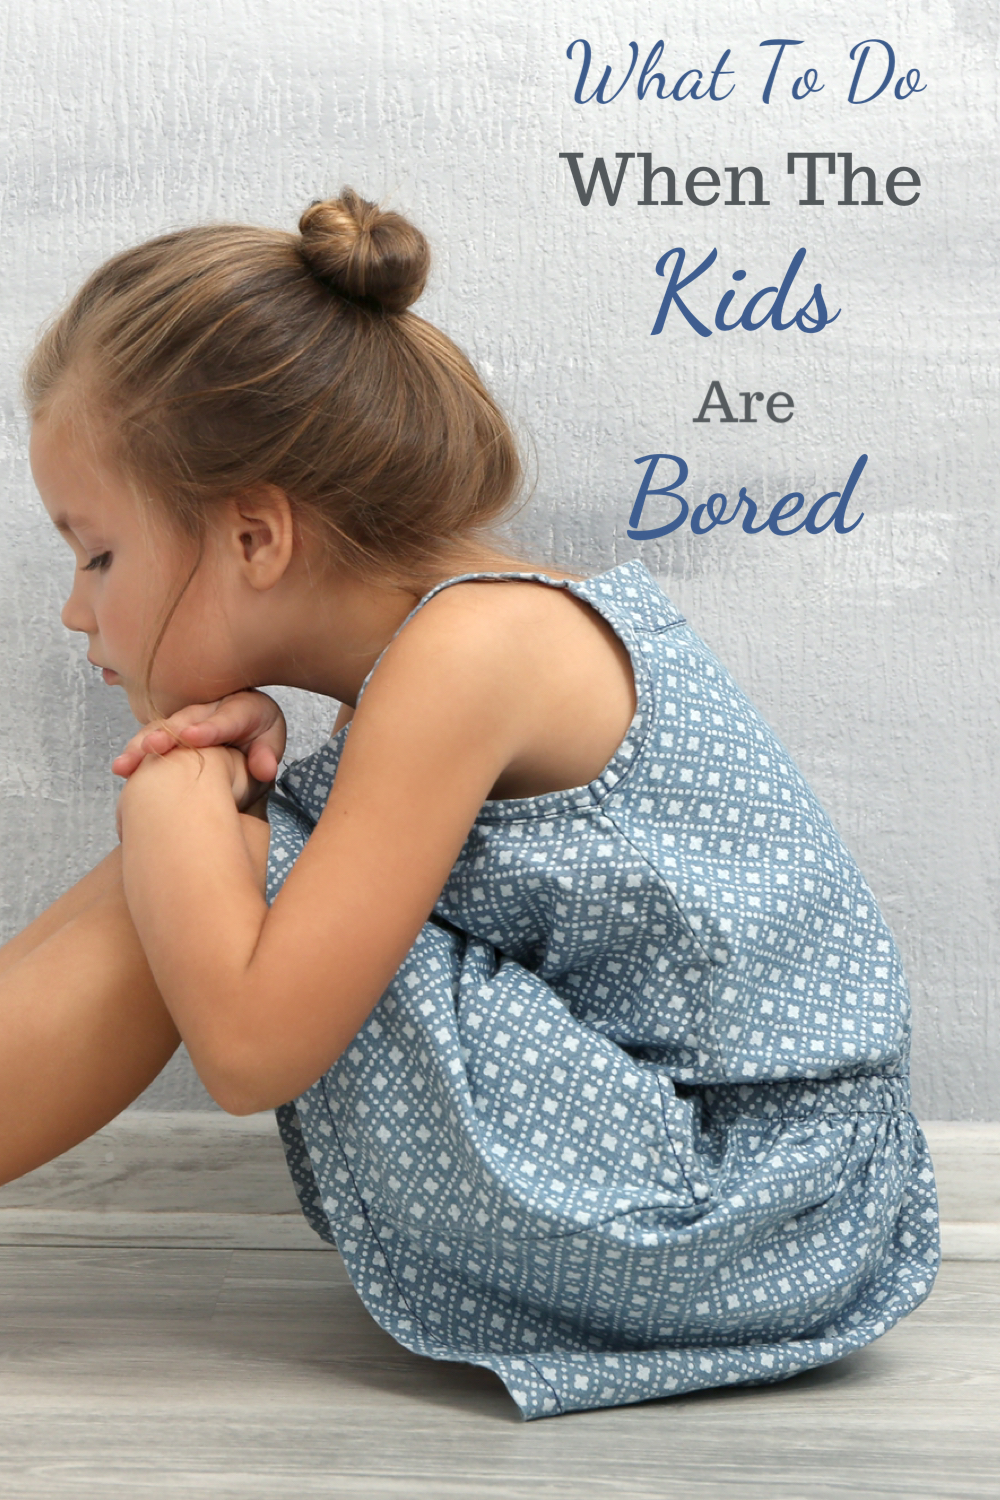 What to do when the kids are bored